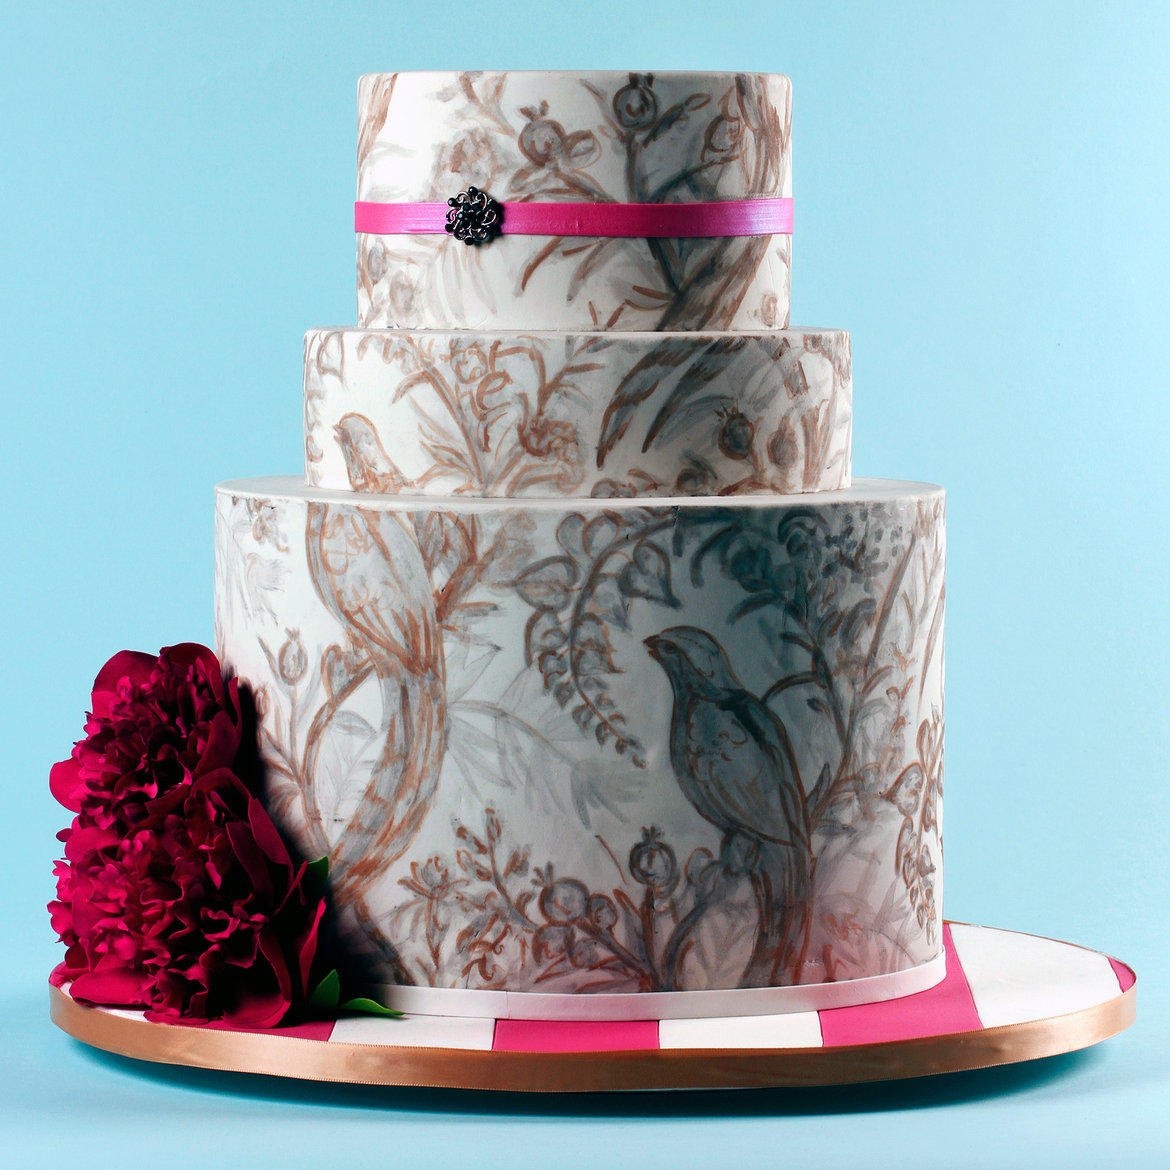 Average Cost Wedding Cake 20 Photos Of The Quot Average Wedding Cake Prices Quot Typical Cake Costs Let Them Eat Cake Pin Average Cost Of A Wedding Cake Cake On Pinterest And